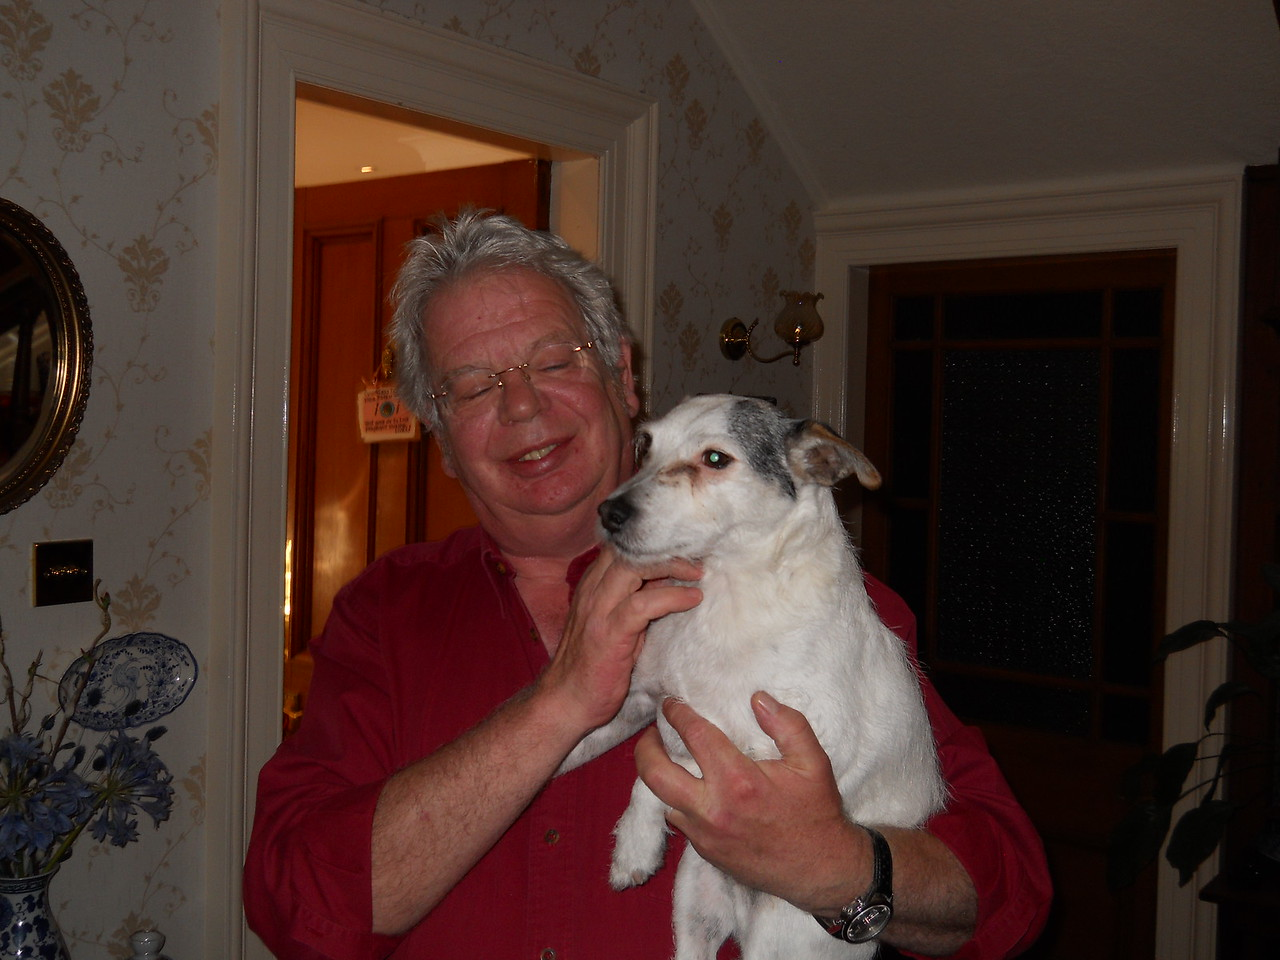 our good friend, Tim and Pip